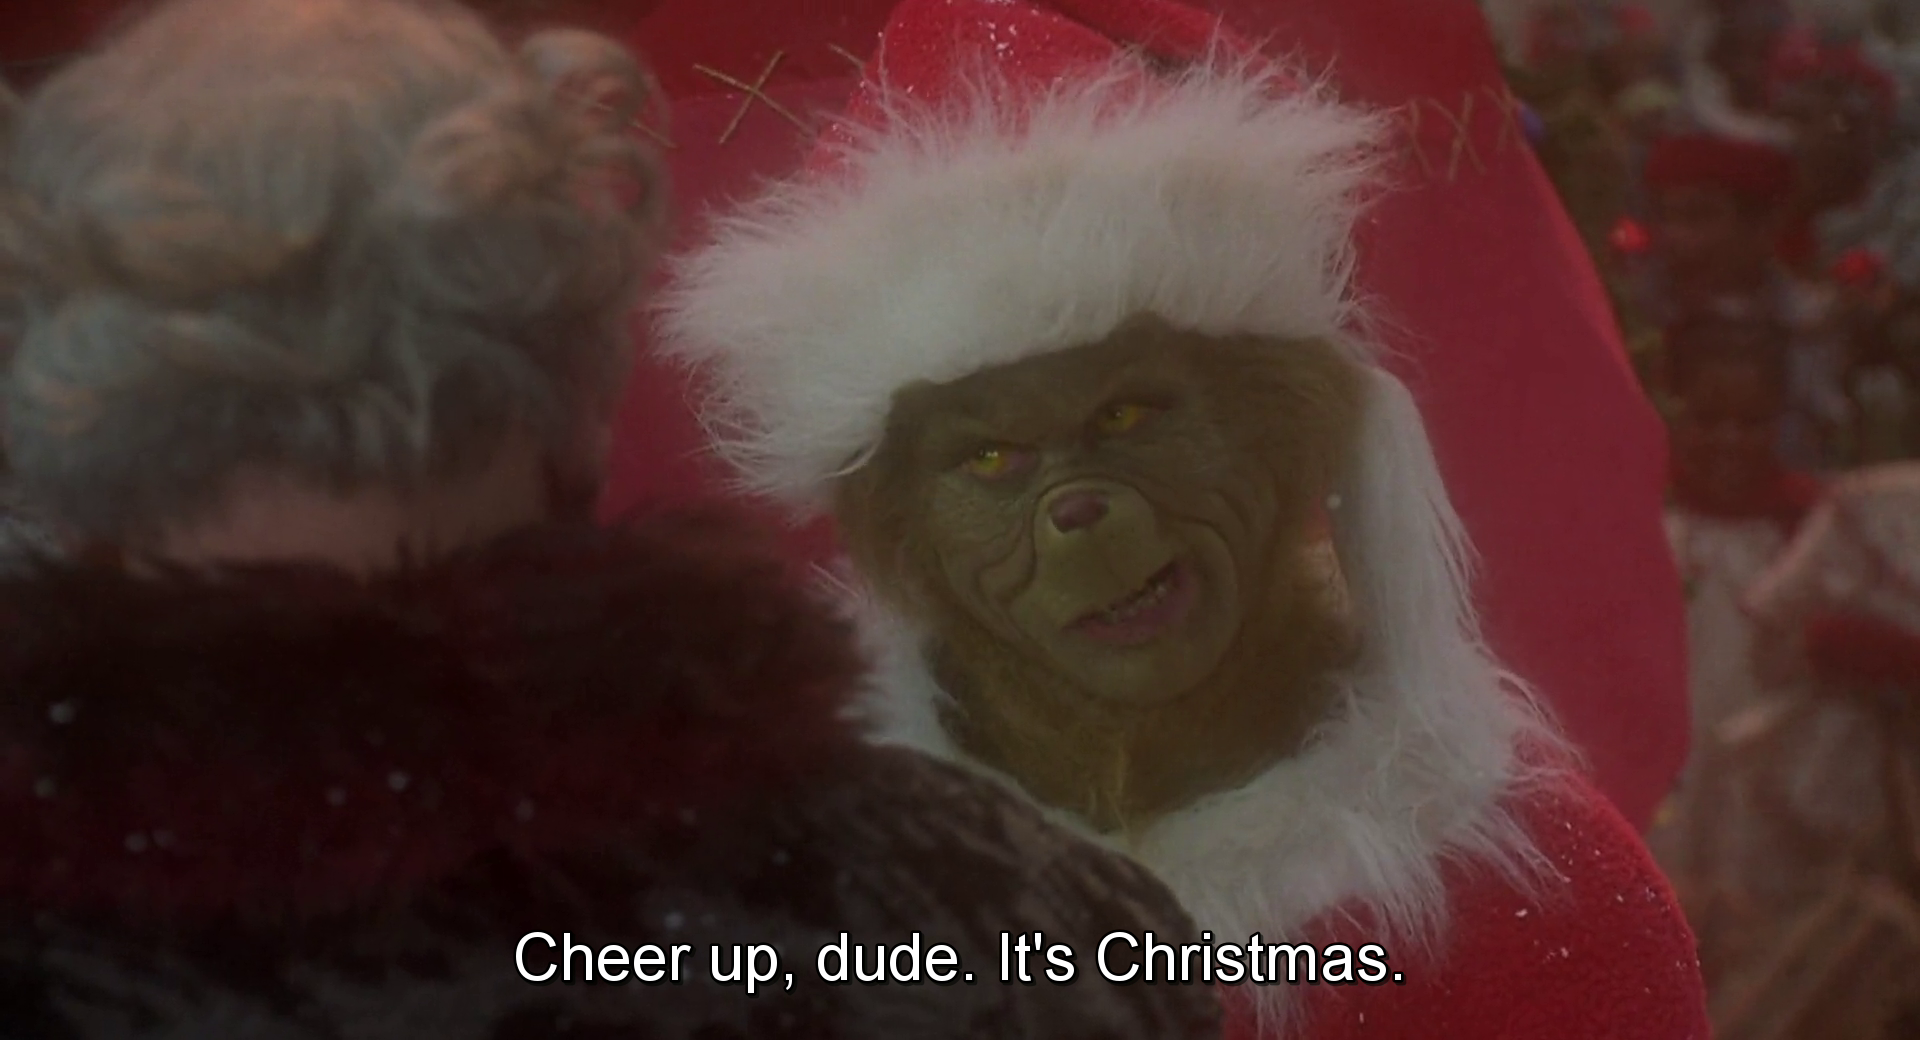 The Grinch. Cheer up dude, it's christmas. | Grinch memes ...